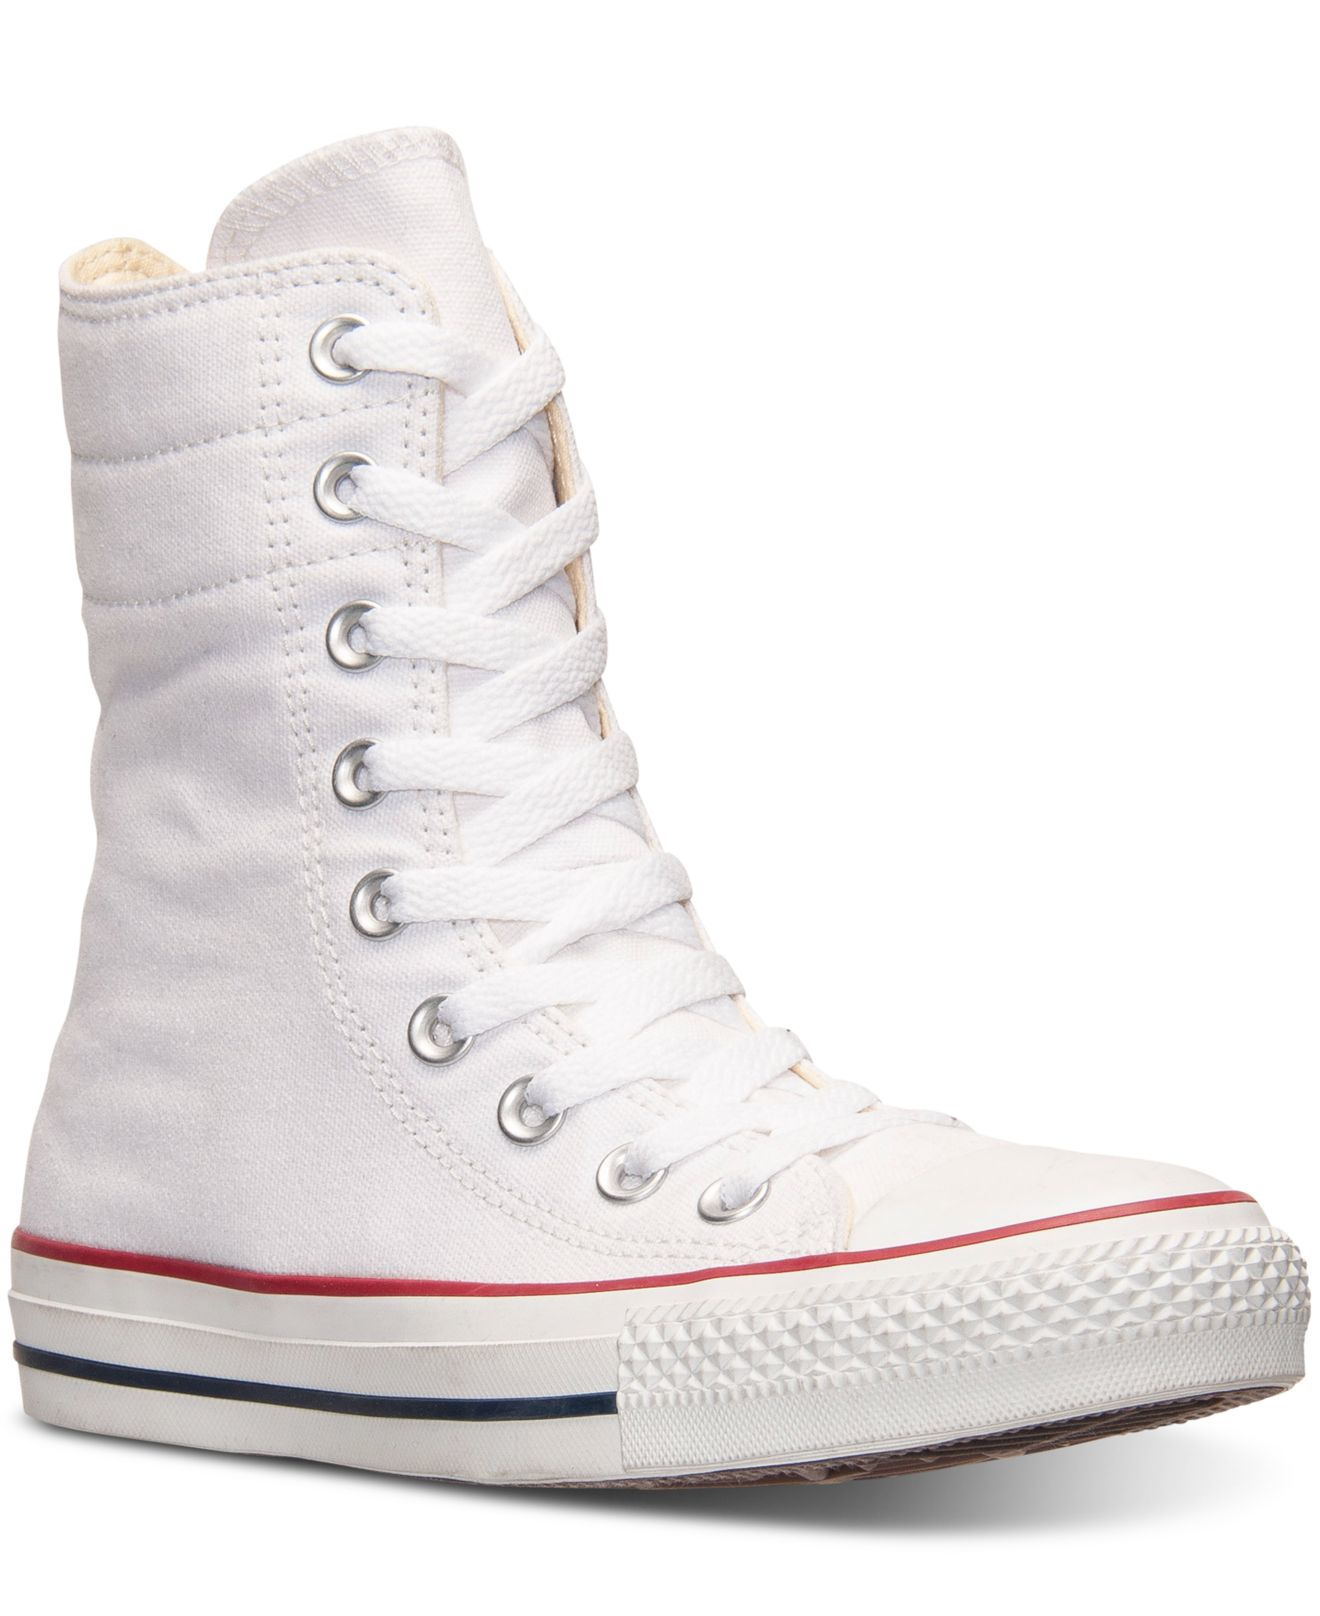 coupon code for high rise white converse a9180 2517d